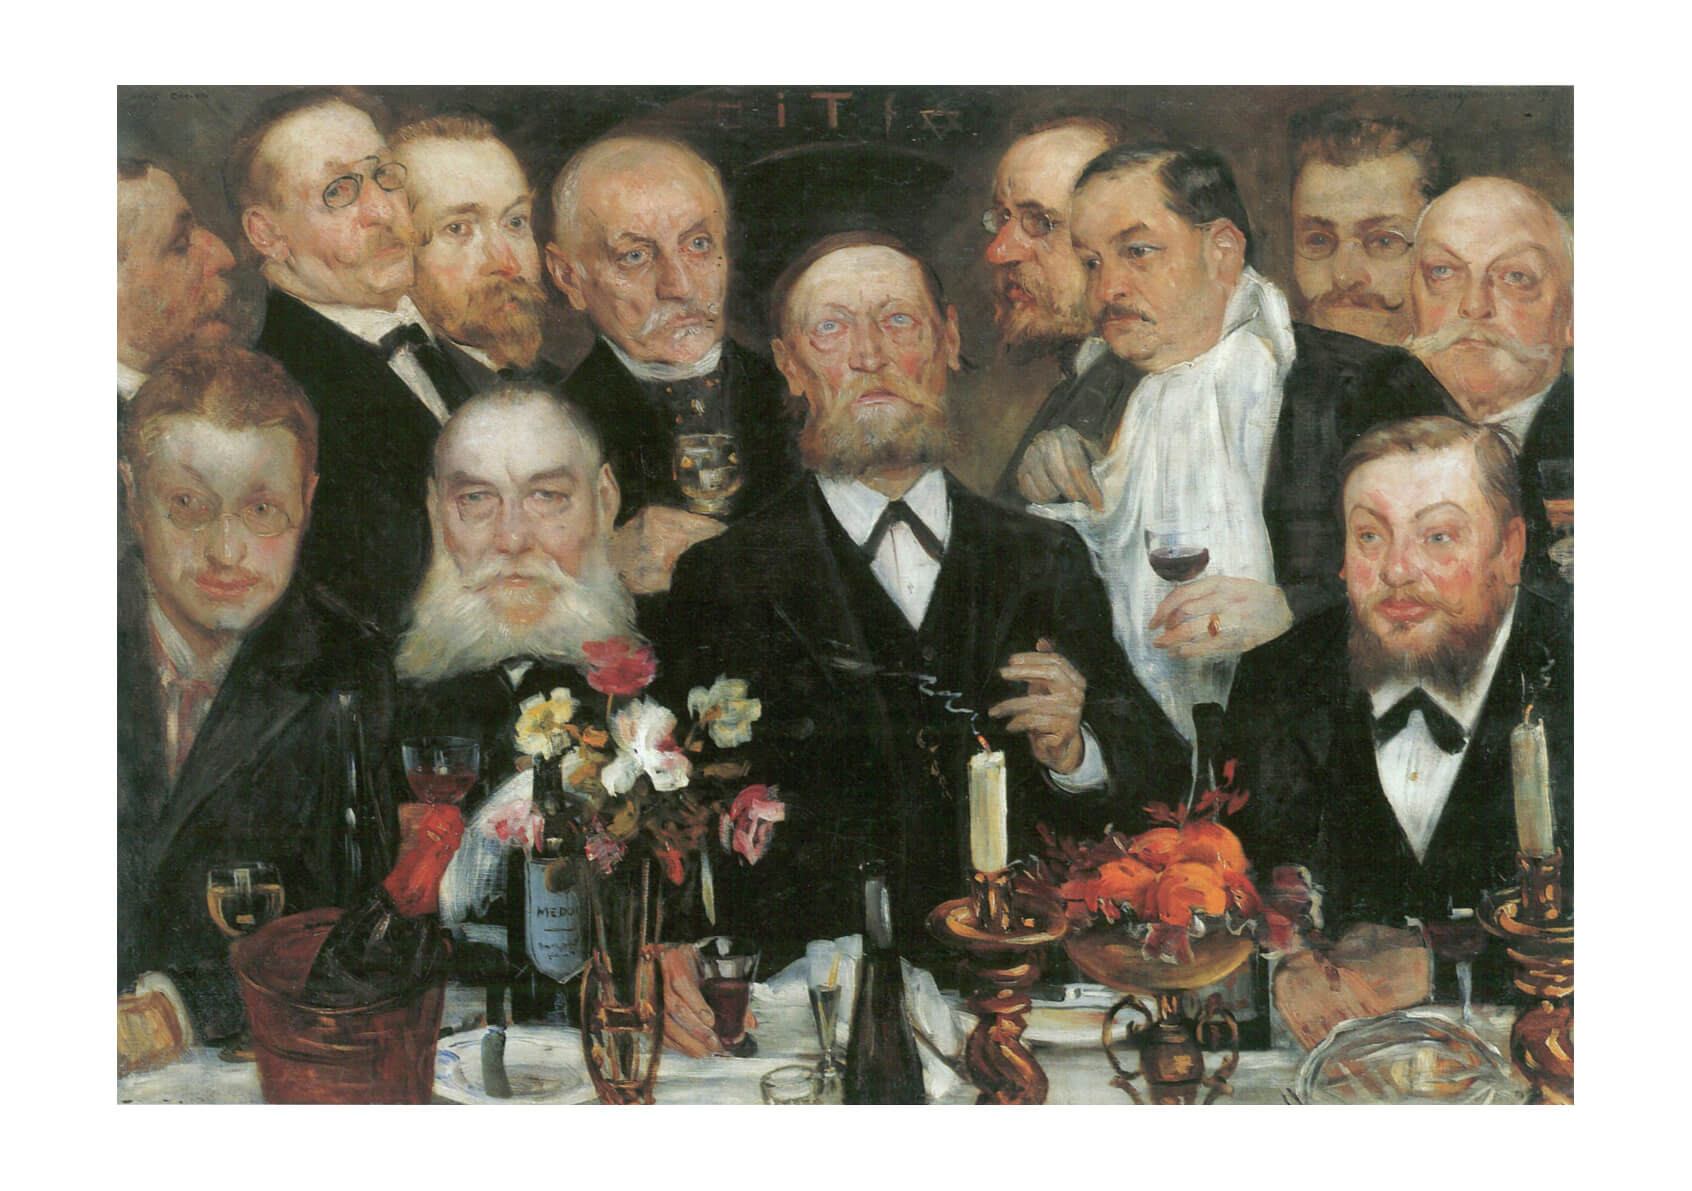 Lovis Corinth - Men in Suits